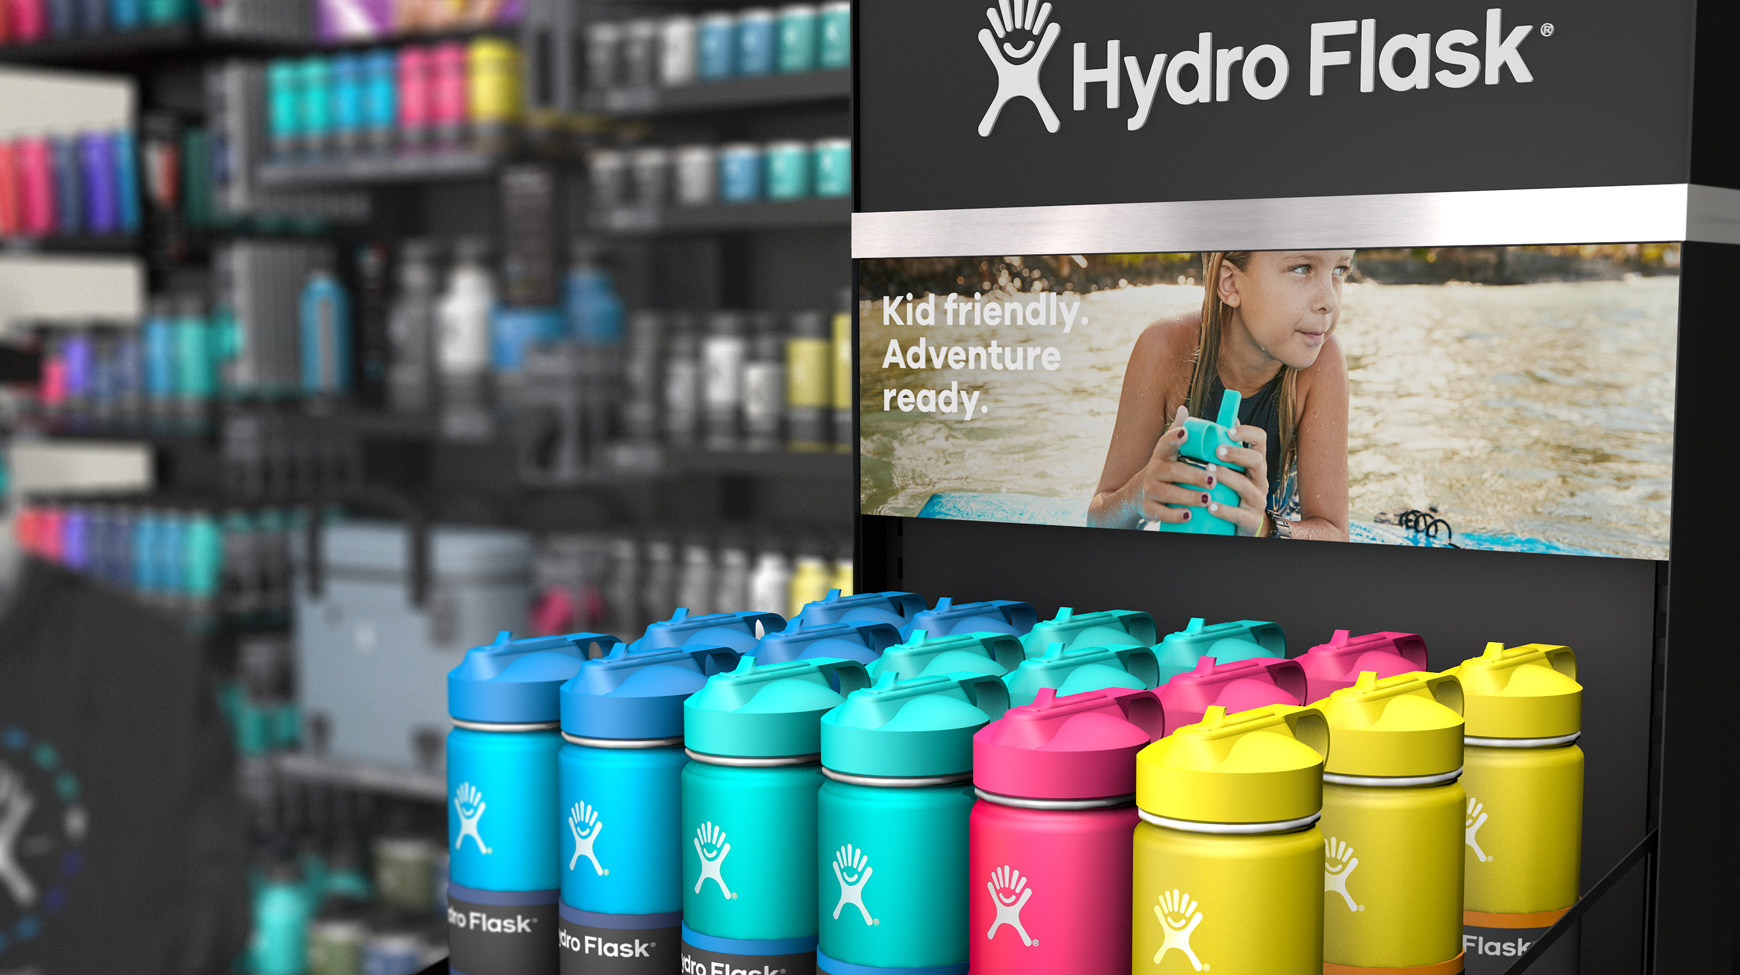 Digital product render of hydro flask bottles set up in colorful gradient